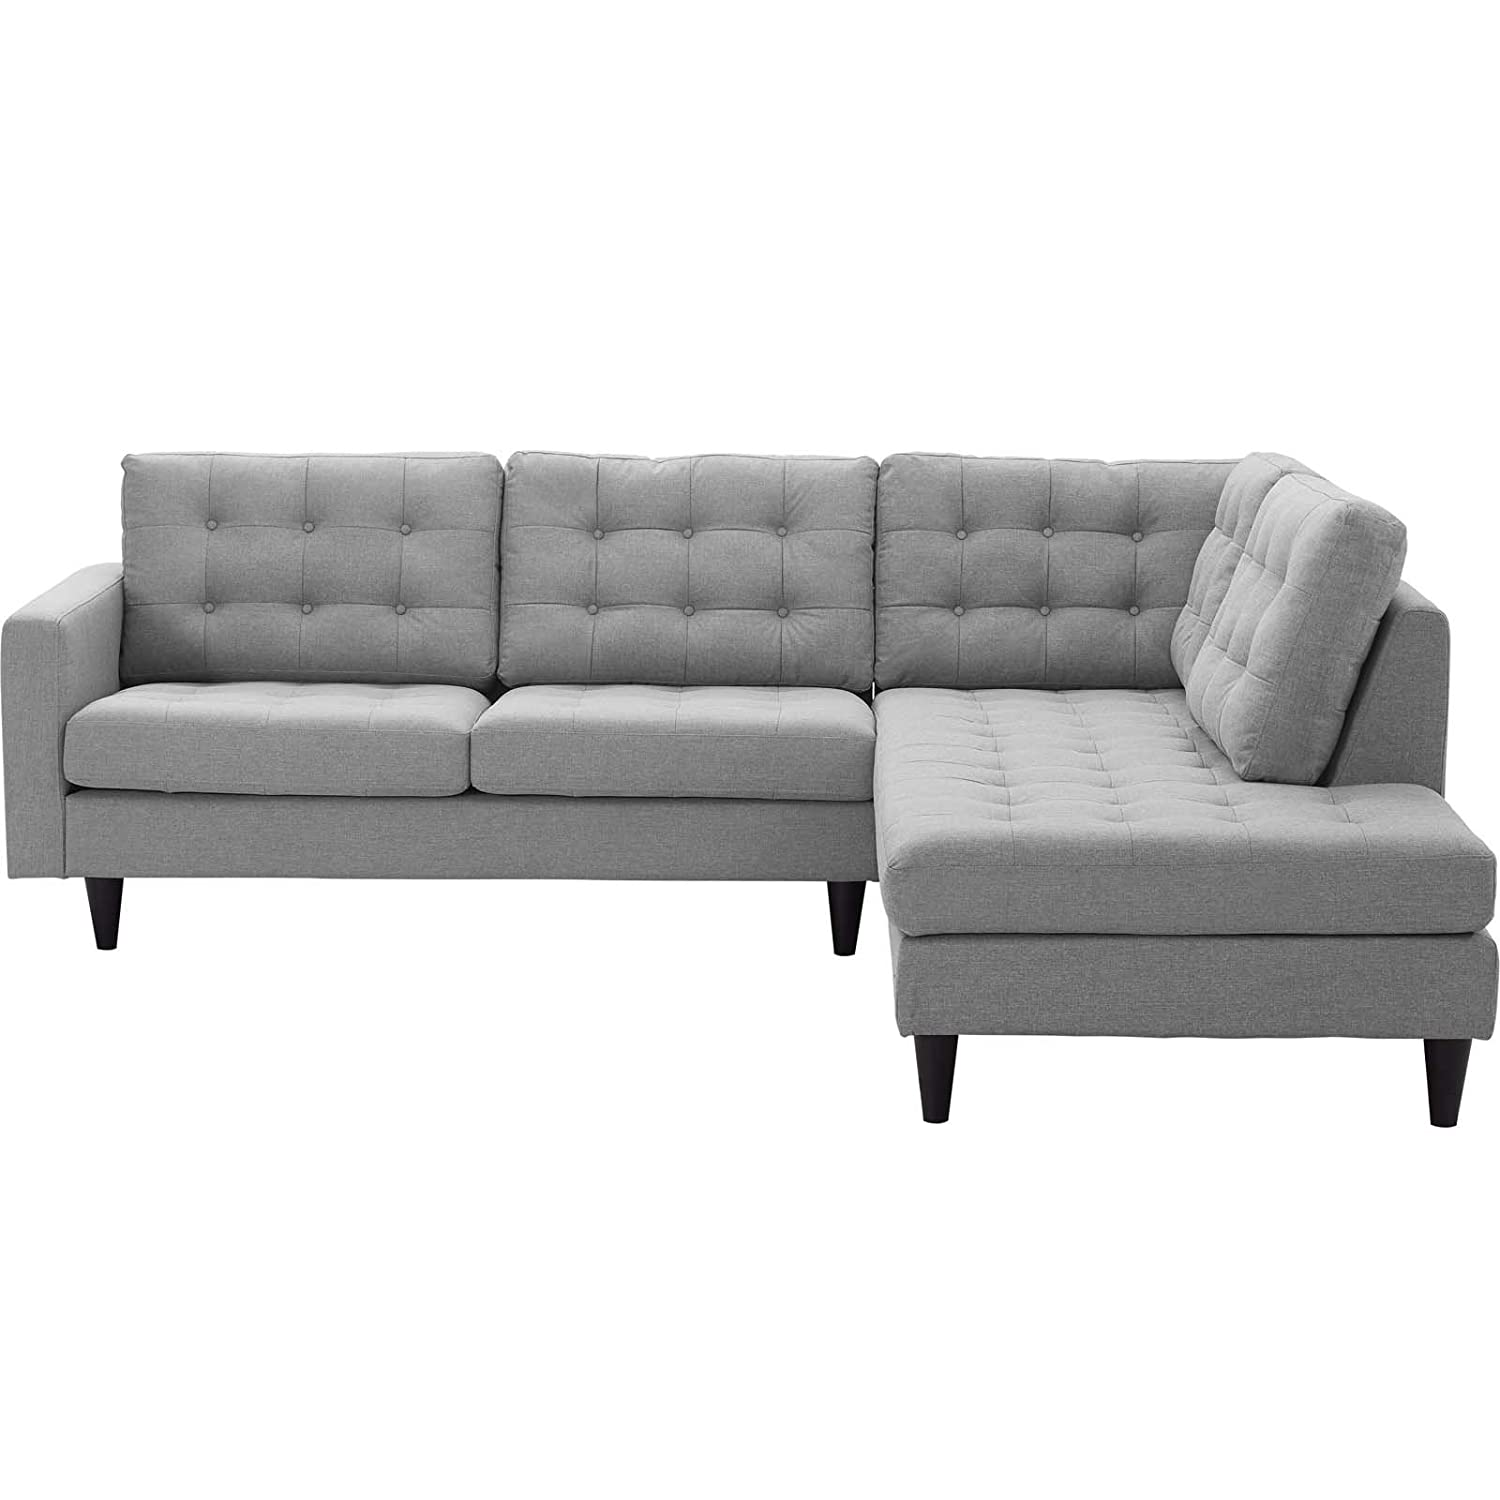 Modway EEI-2797-LGR Empress Upholstered Fabric Living Room, Right-Facing Bumper Sectional Sofa Set, Light Gray